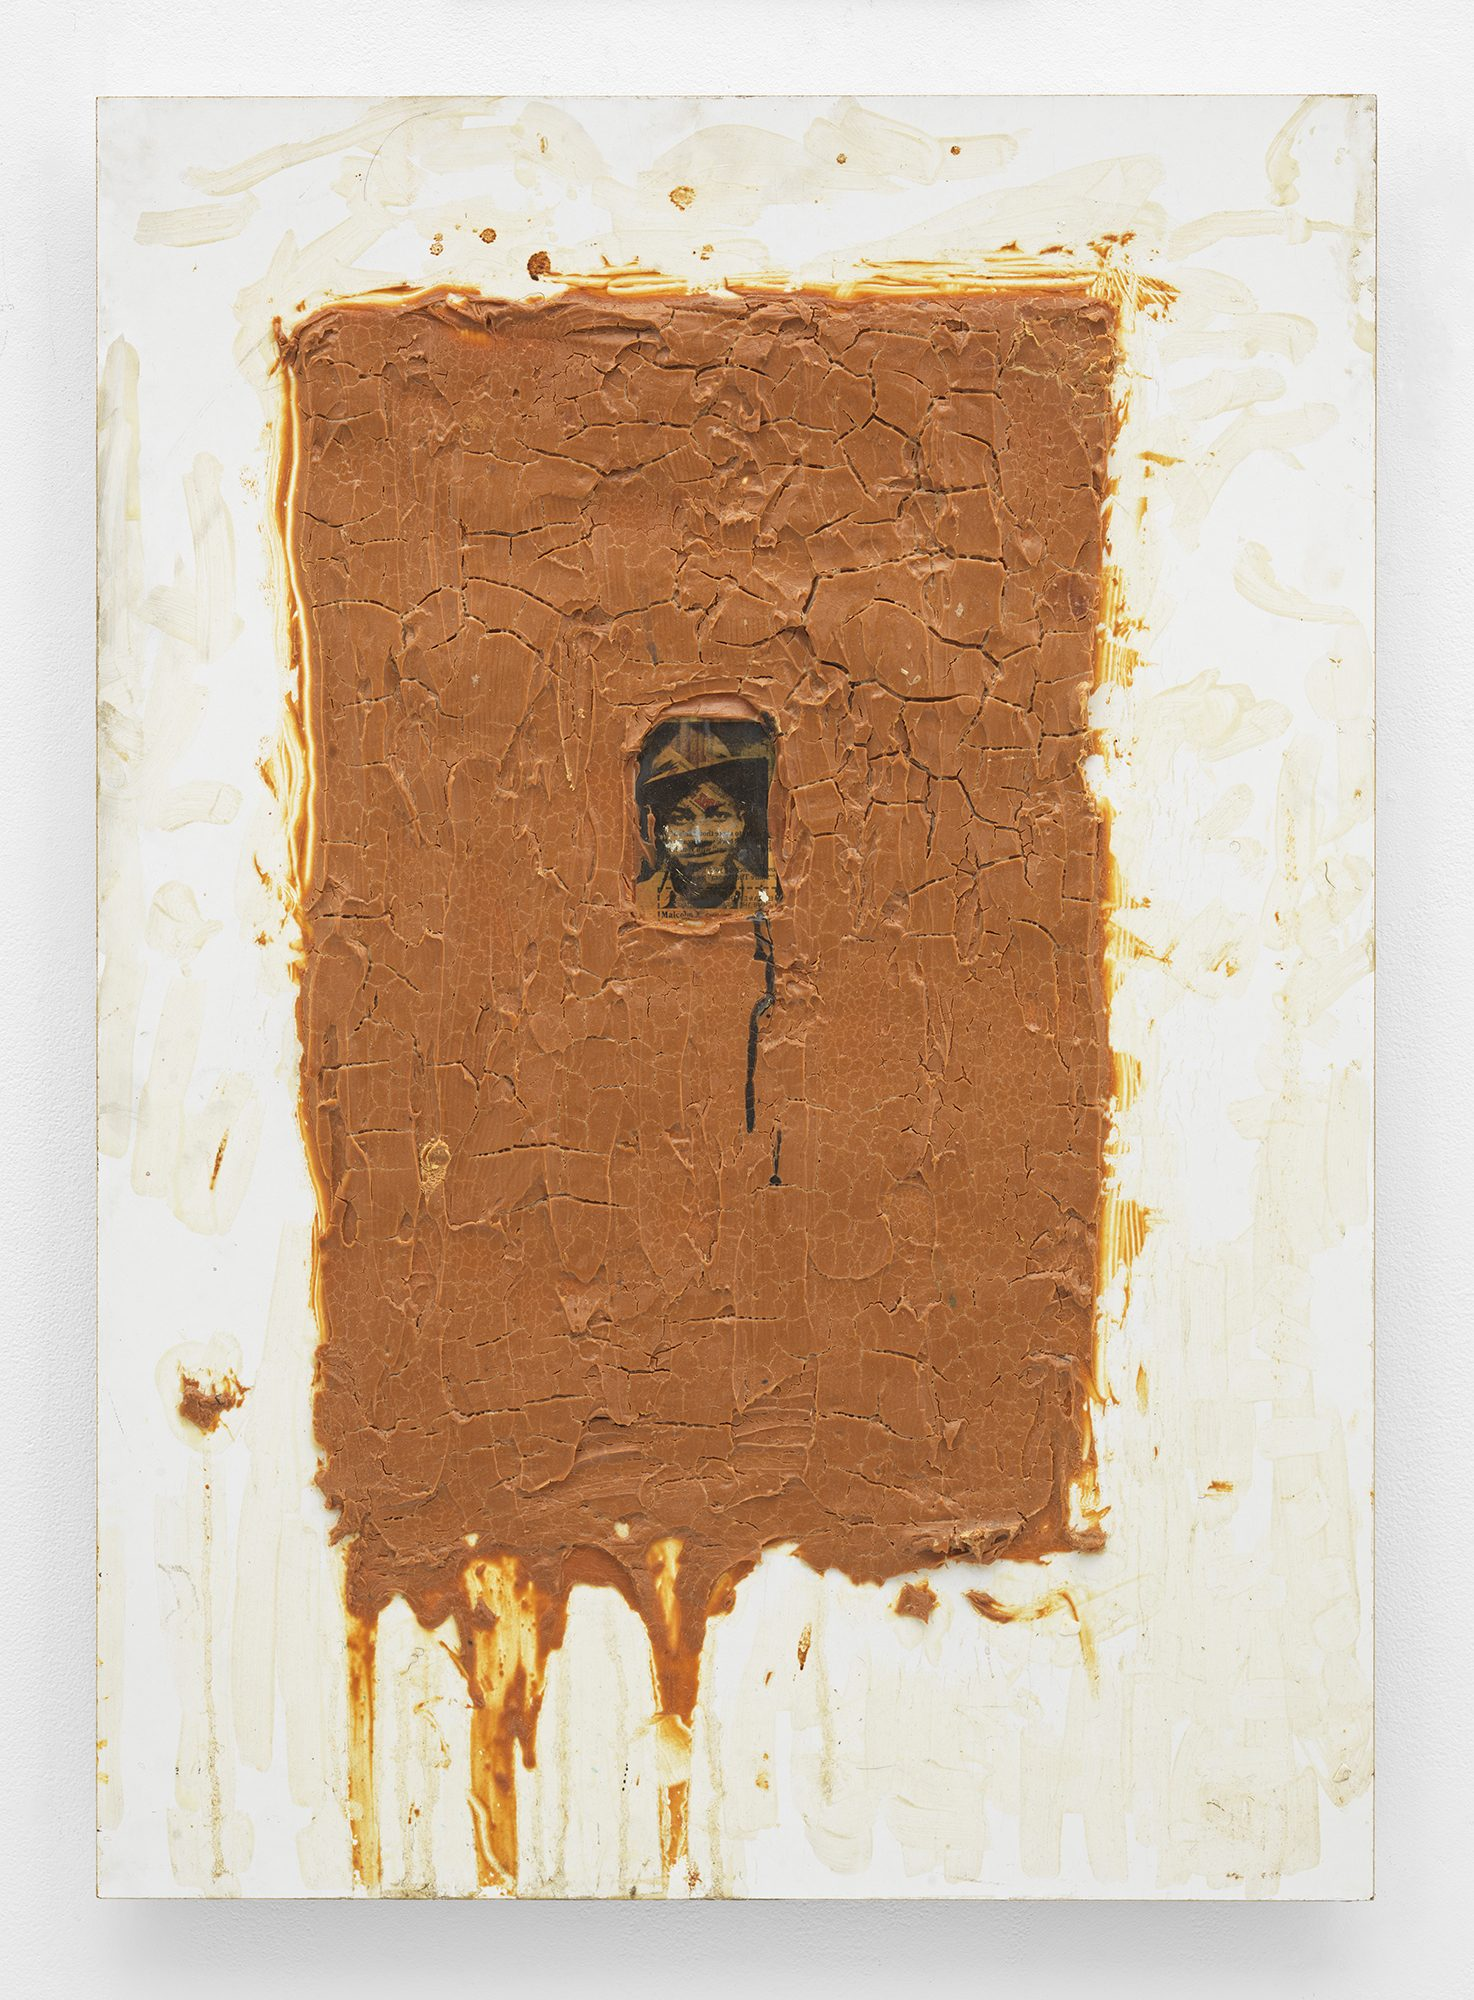 William Pope.L, Mal Content, 1992. Acrylic, gel medium, newspaper, and peanut butter on white formica on particle board . 34 7/8 by 24 3/4 by 2 in.